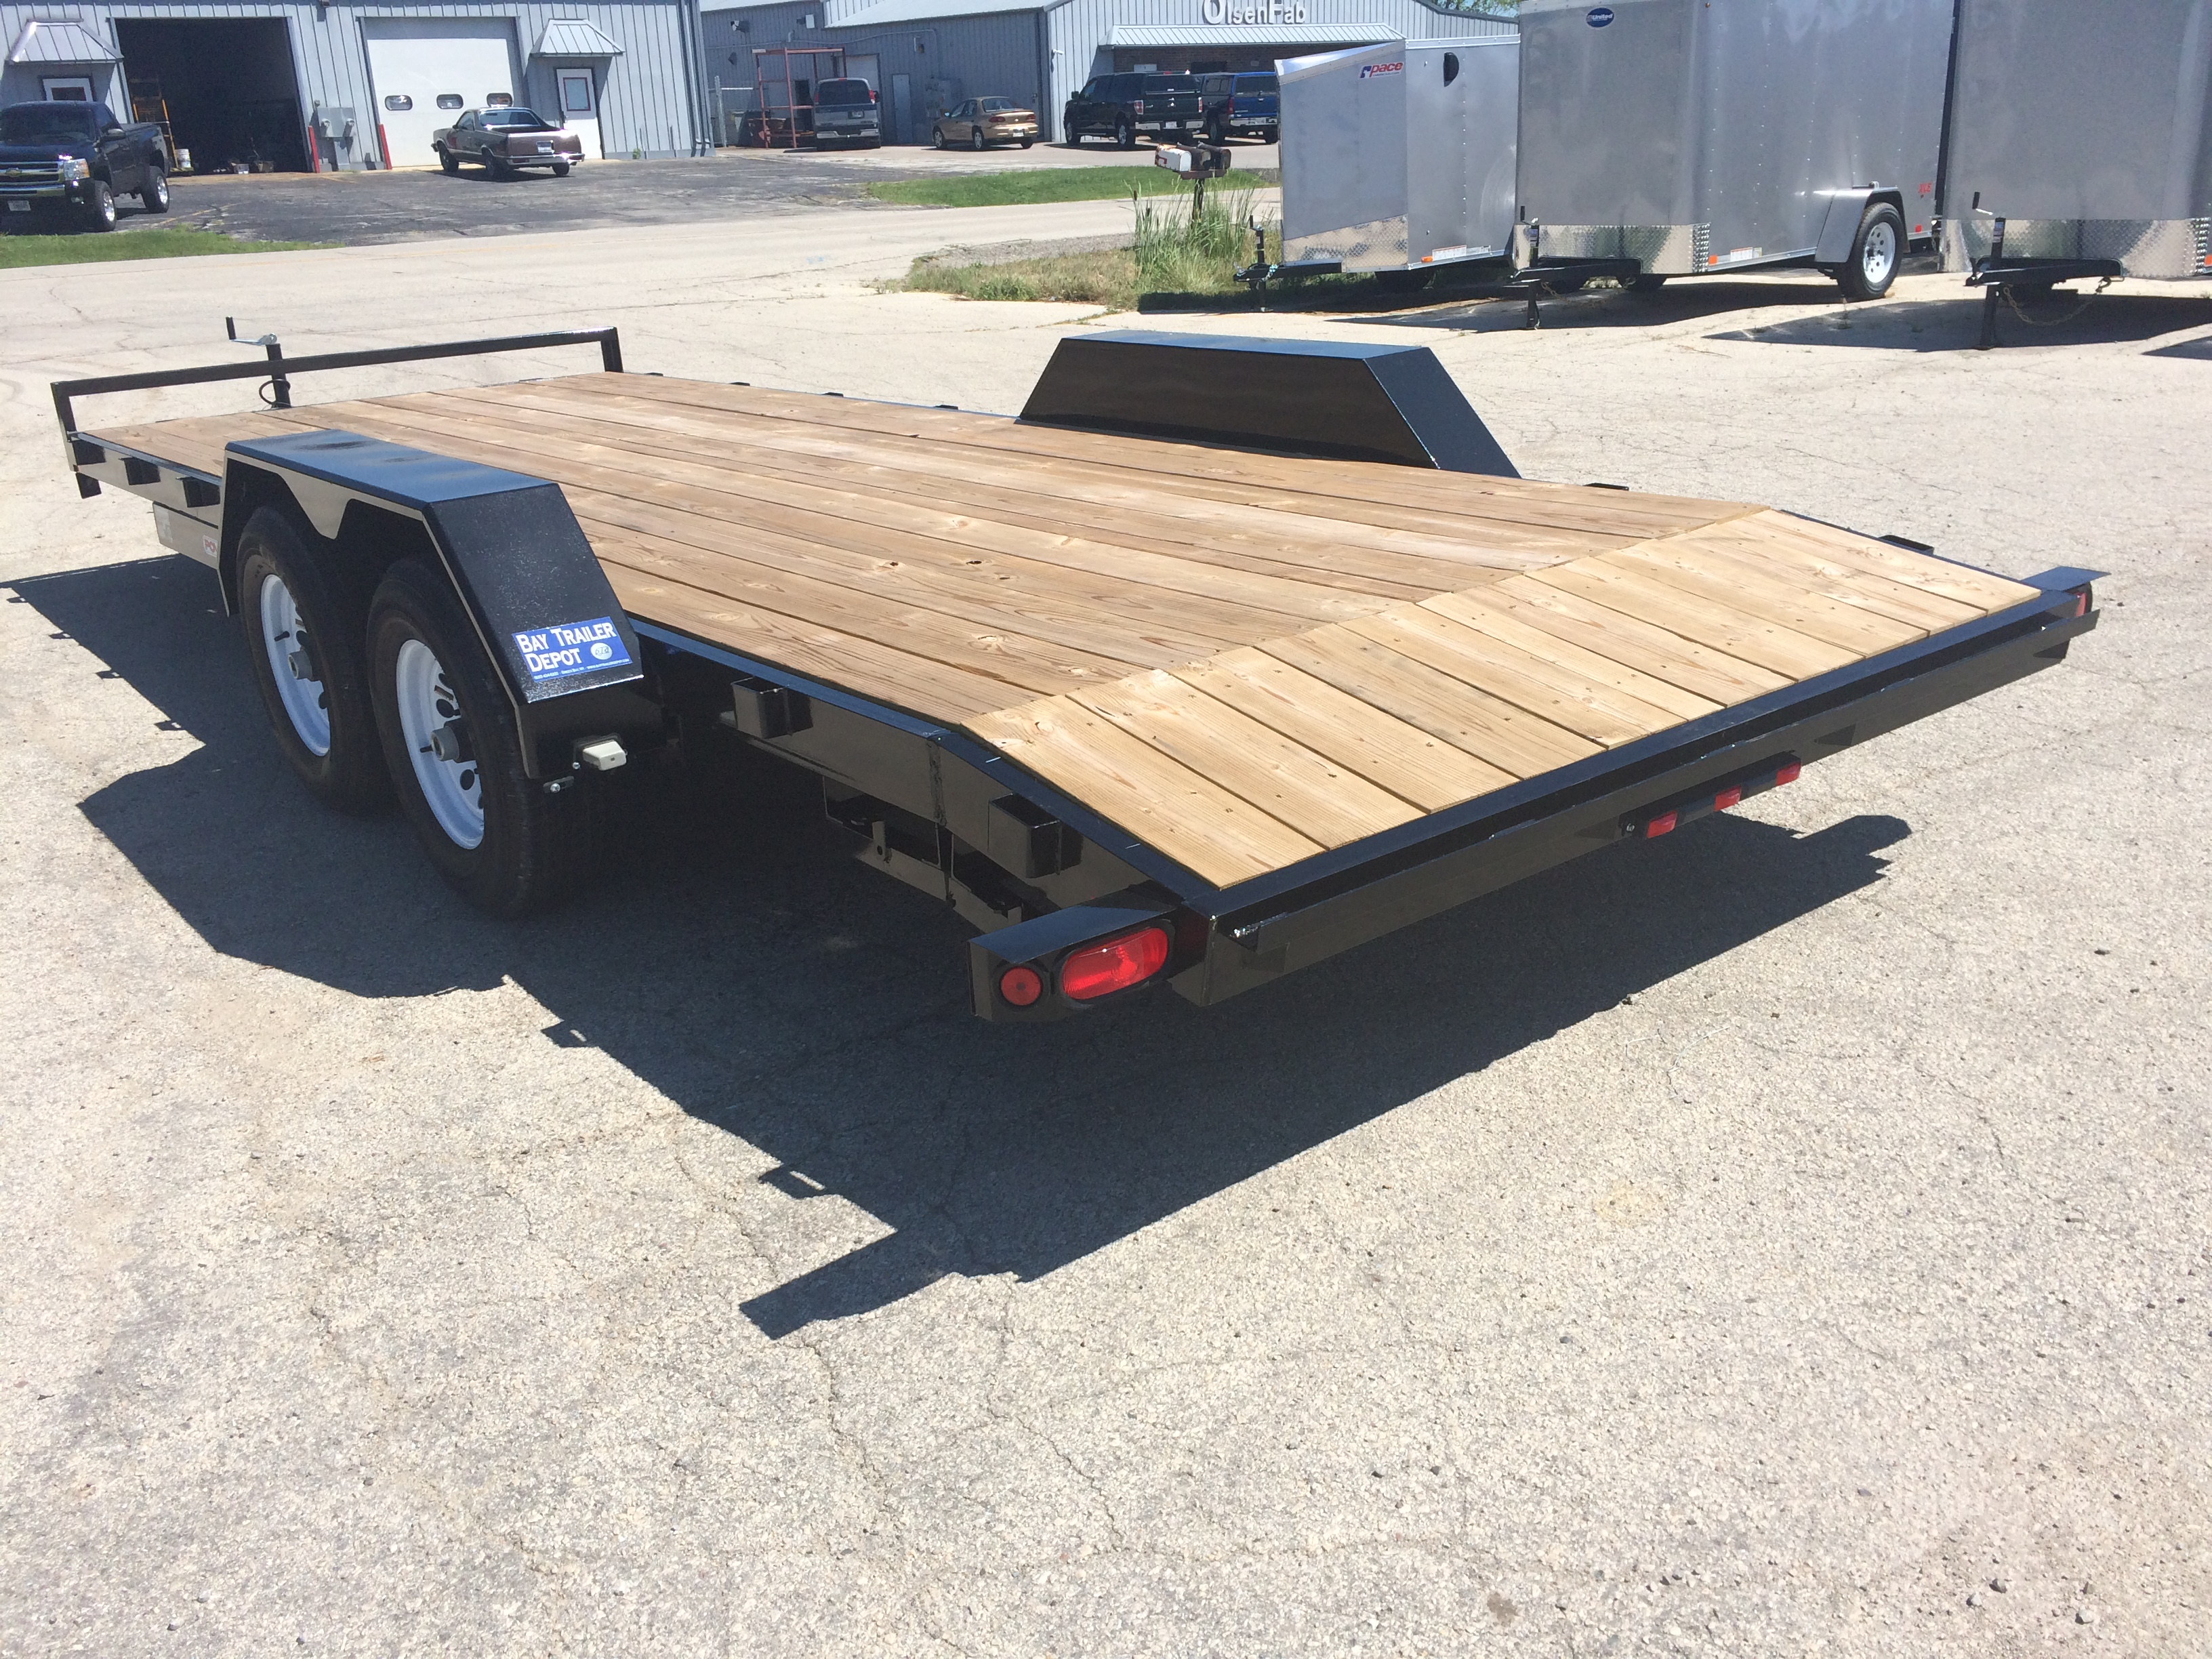 2019 liberty 10k gvwr 82 x 20 channel car hauler trailer bay trailer overview standard features malvernweather Images